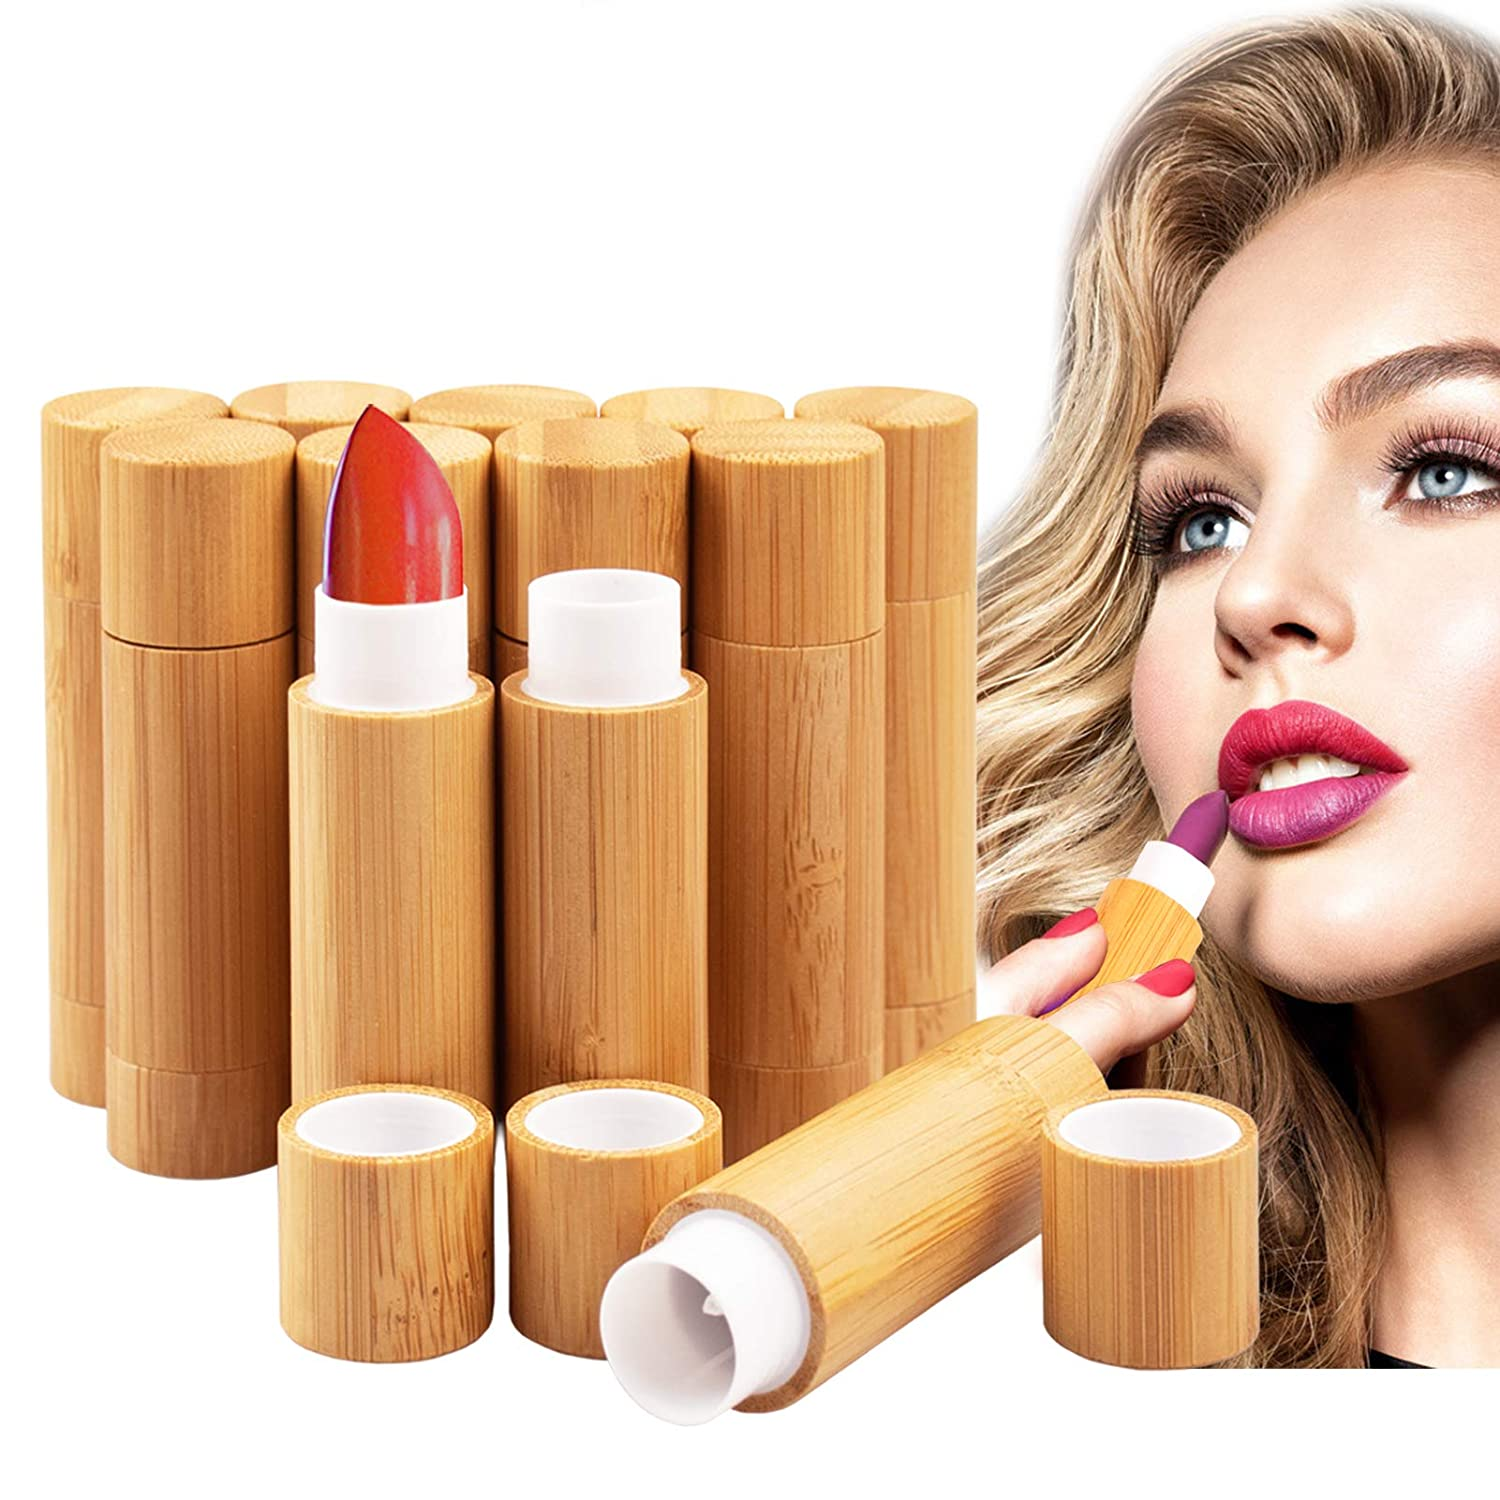 12Pcs Bamboo Empty Lipstick Tubes, AUHOKY 5.5g Refillable DIY Lip Balm Tube Containers with Clear PP Plastic Inner, Cosmetic Lipstick Lip Gloss Deodorant Case Holder For Women Girls Makeup